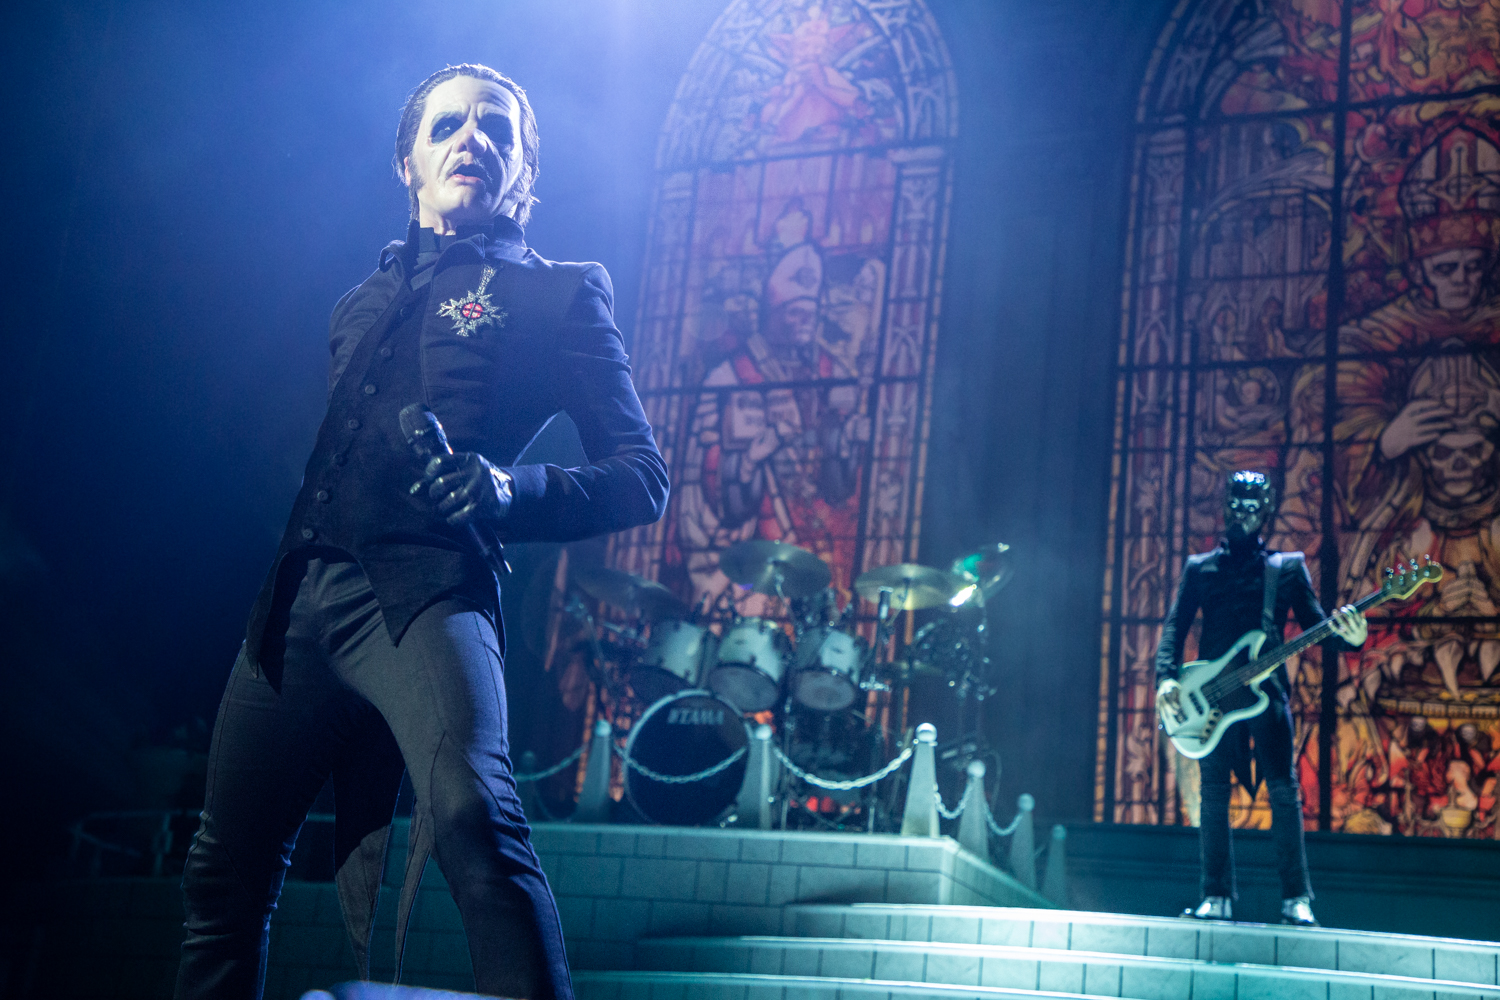 Ghost Barclays Center 2018 4 Live Review: Ghost Turn Brooklyns Barclays Center Into a House of Worship (12/15)